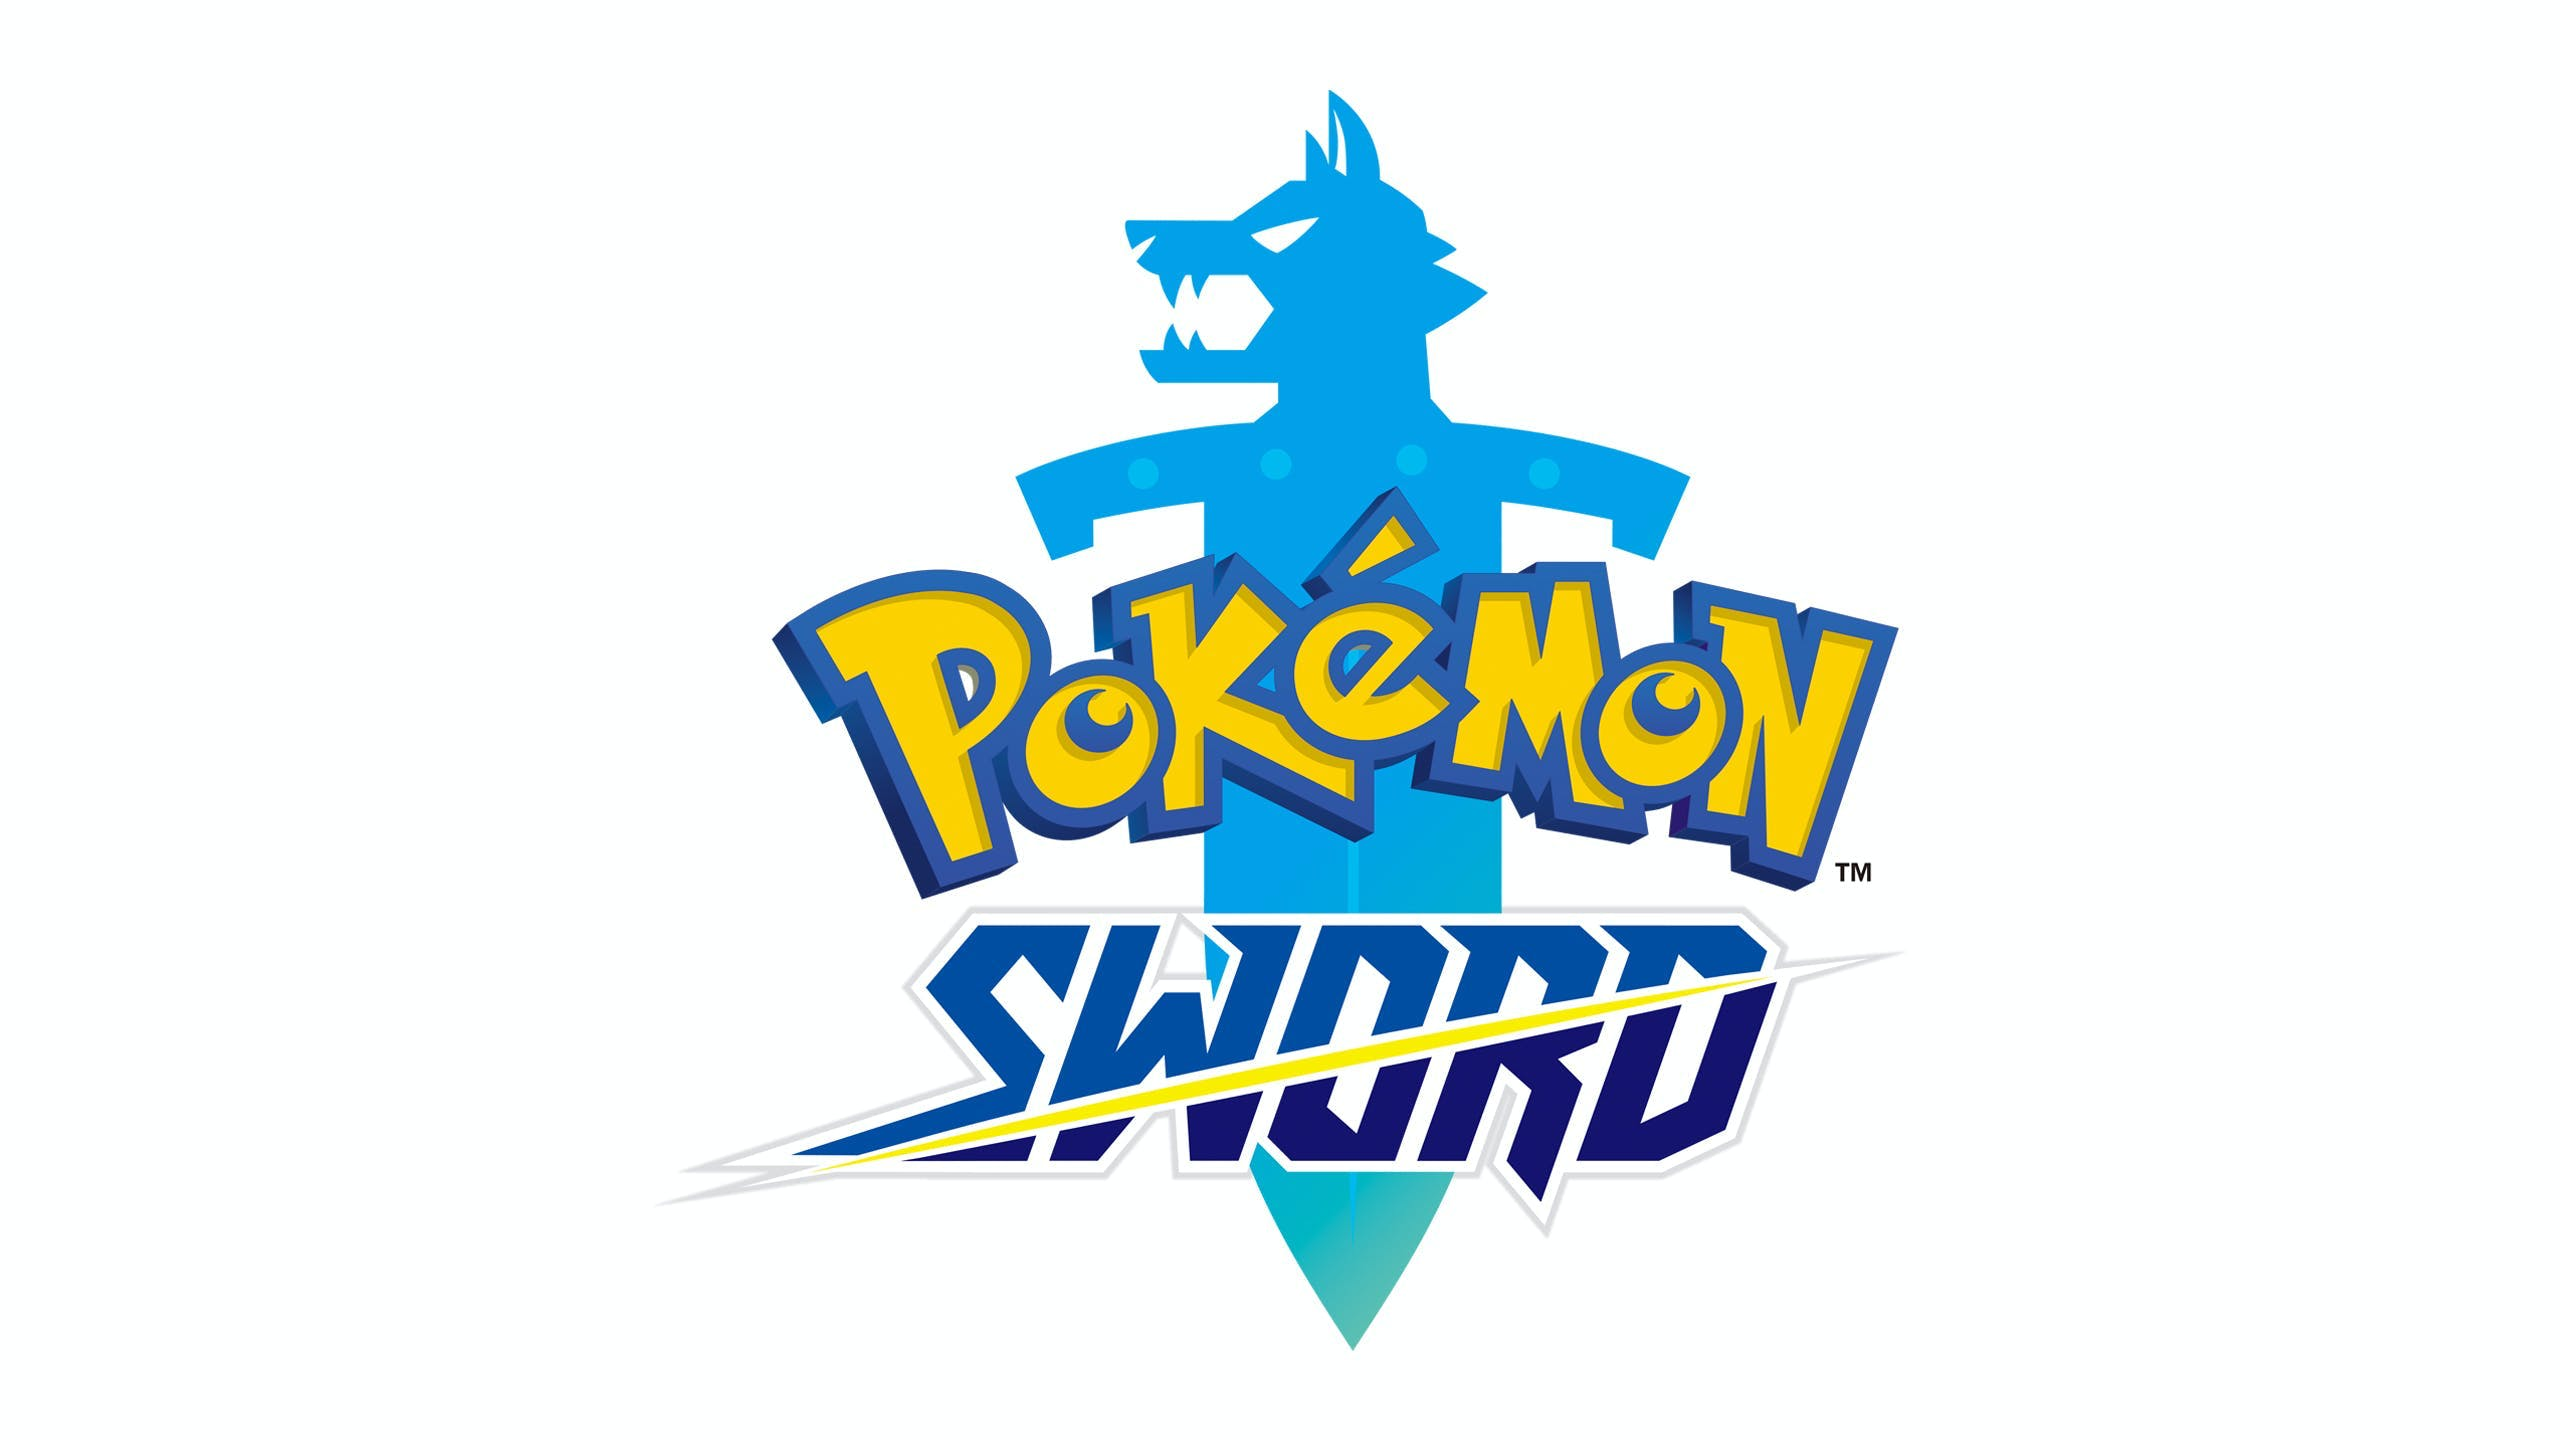 Nintendo Switch Pokémon Sword (PG)